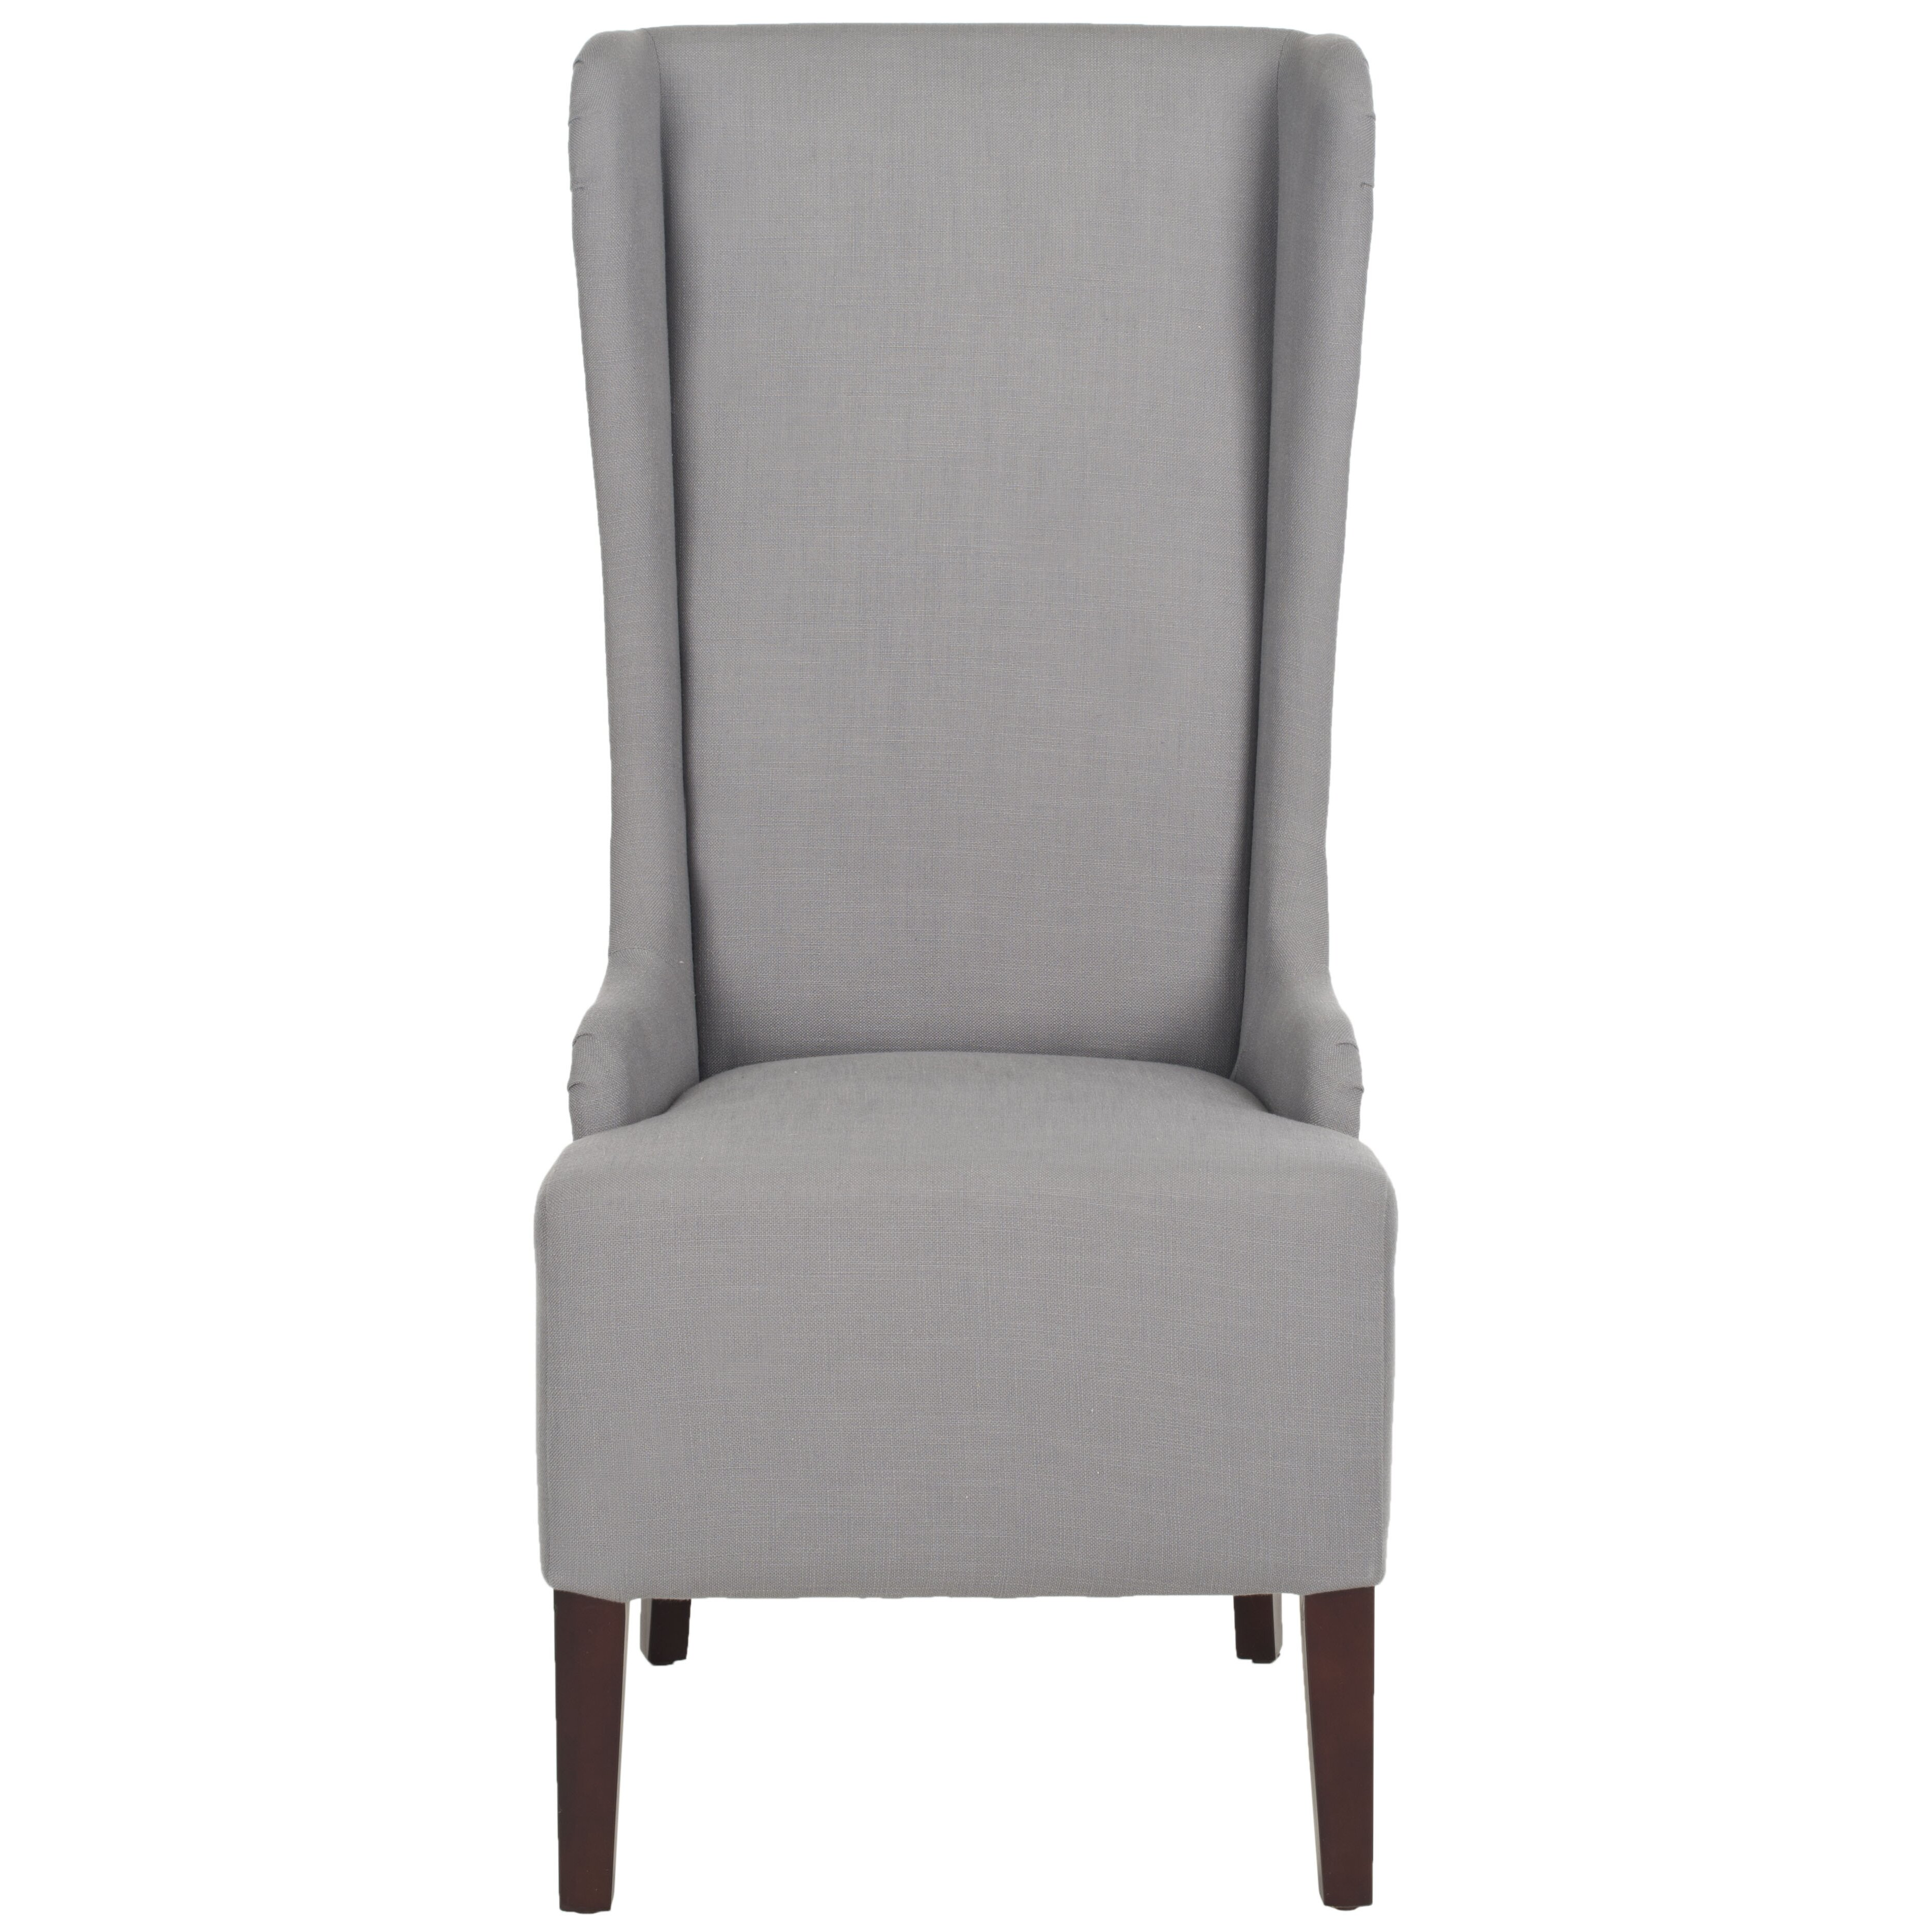 Safavieh Dining Chairs: Safavieh Mercer Becall Dining Chair & Reviews